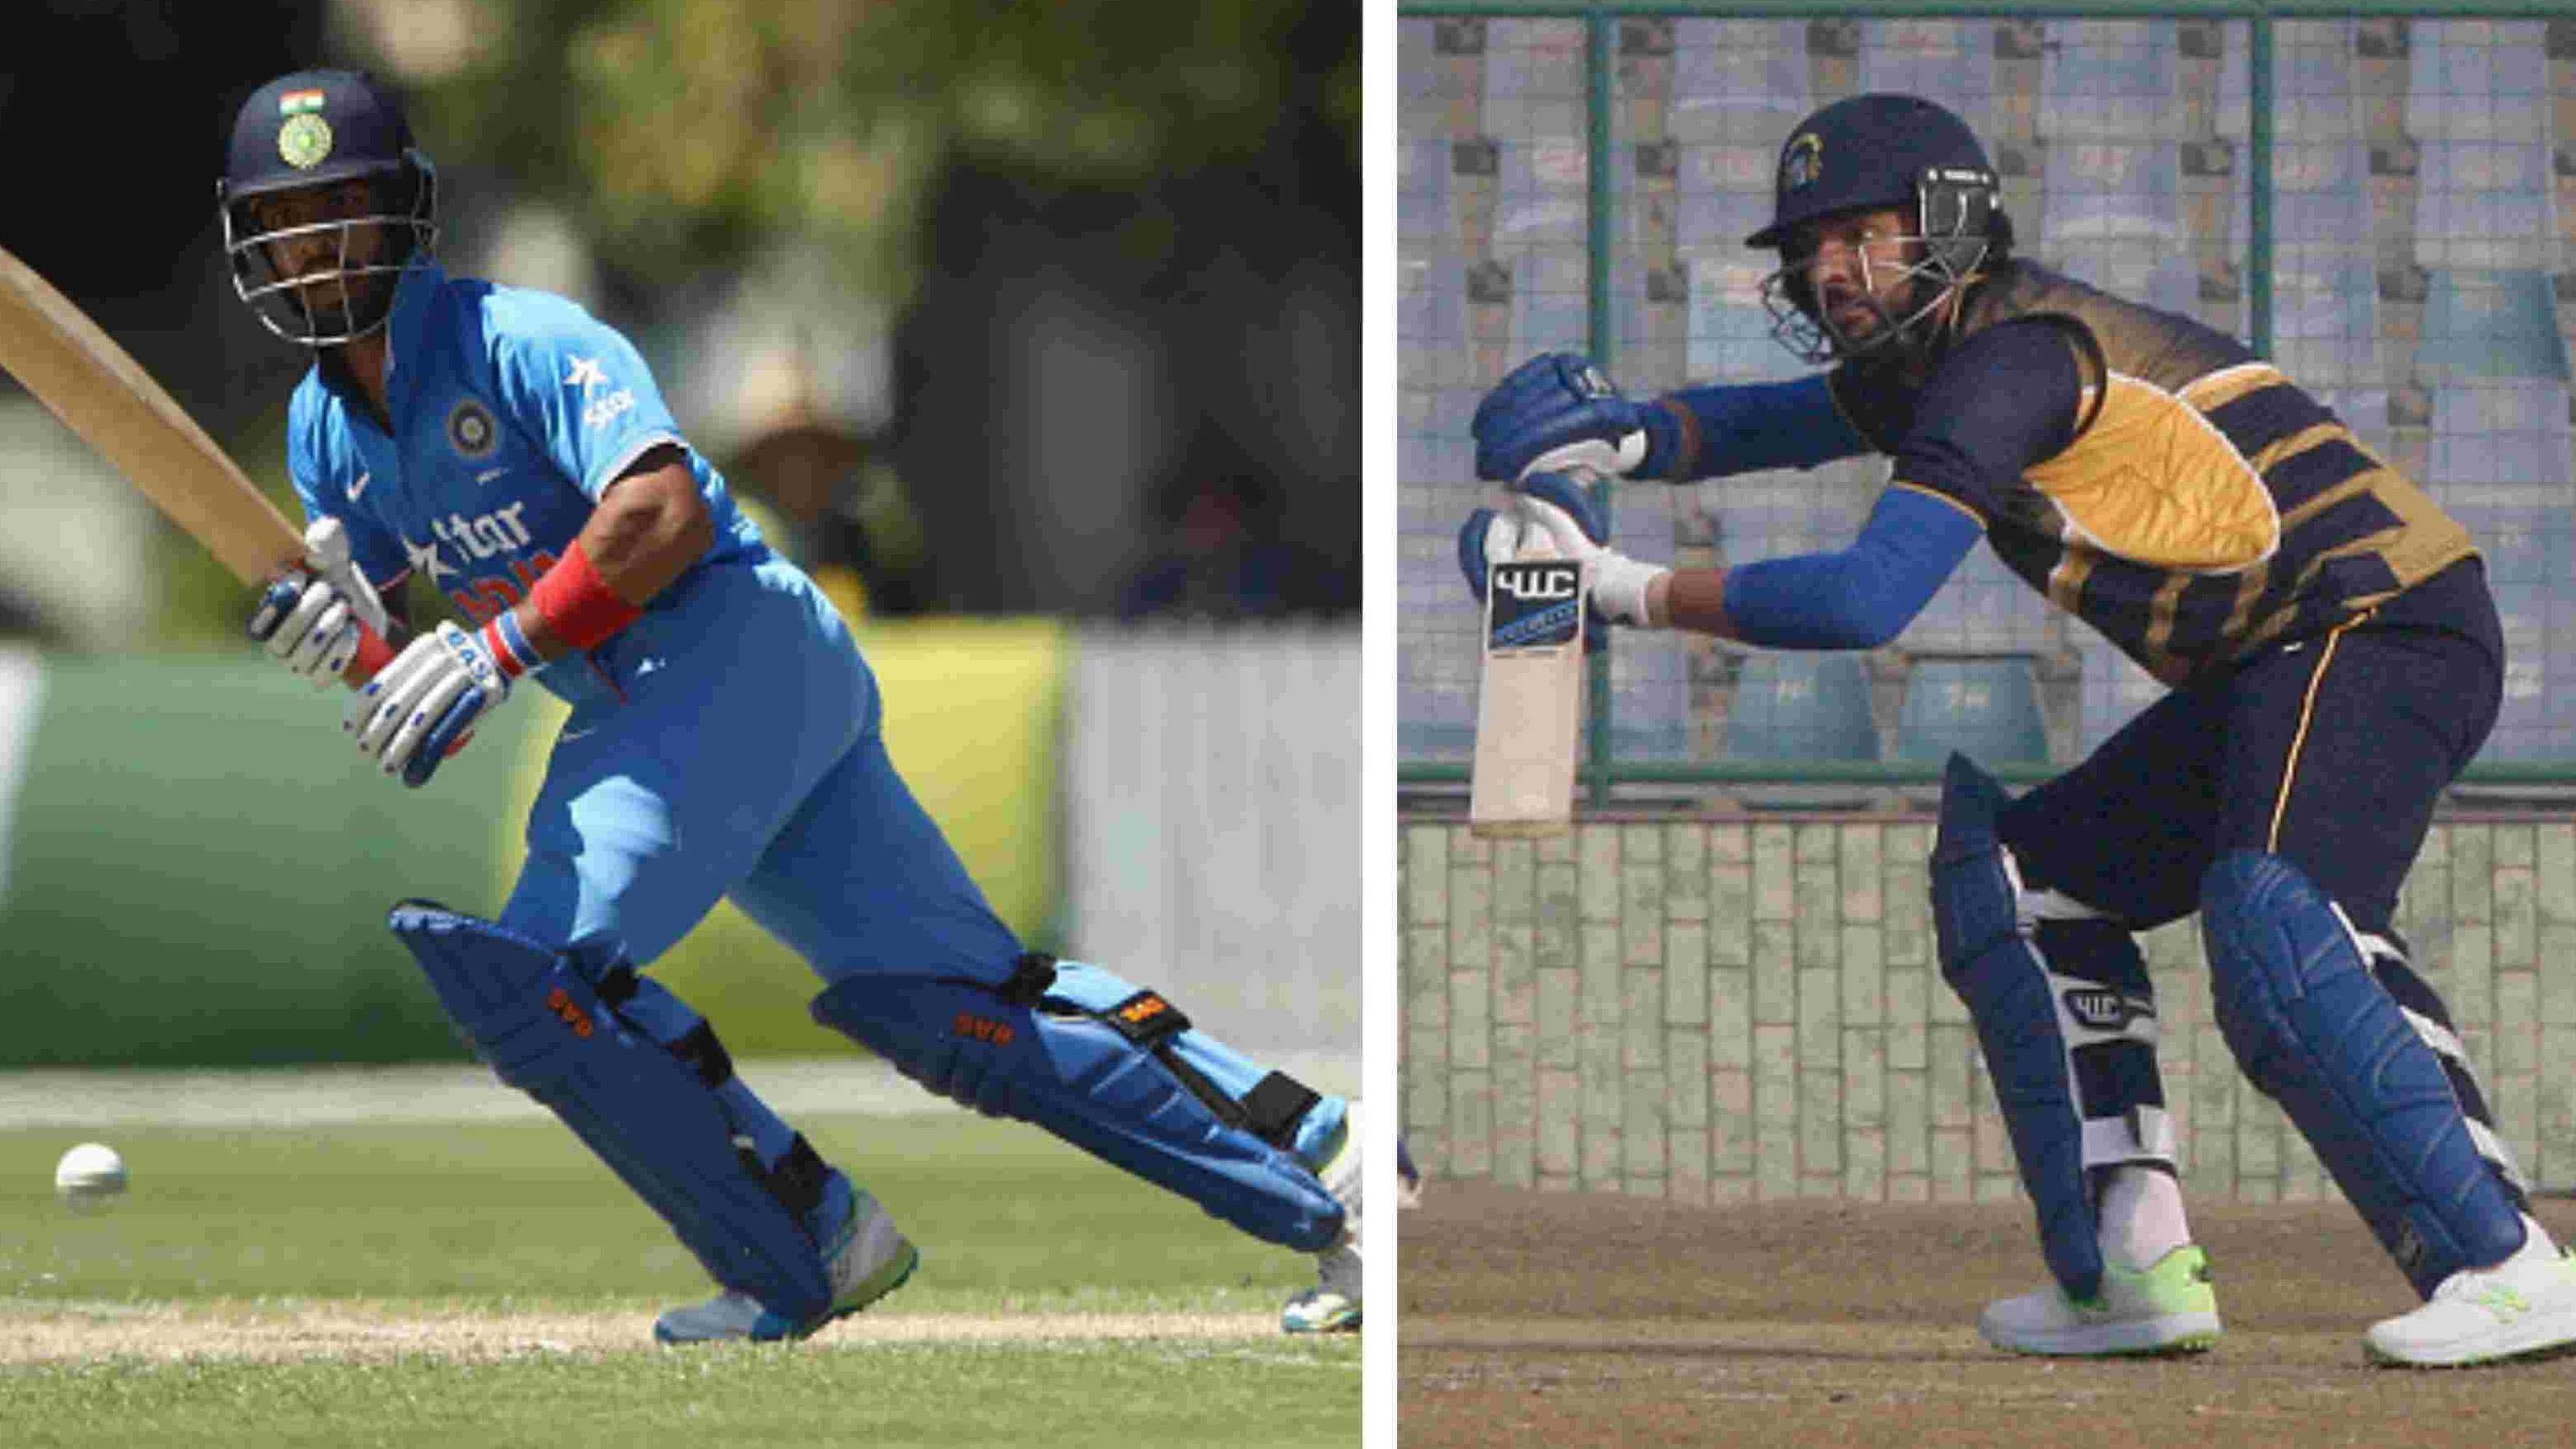 Mandeep Singh to captain Punjab in Vijay Hazare Trophy, Yuvraj Singh named in the squad